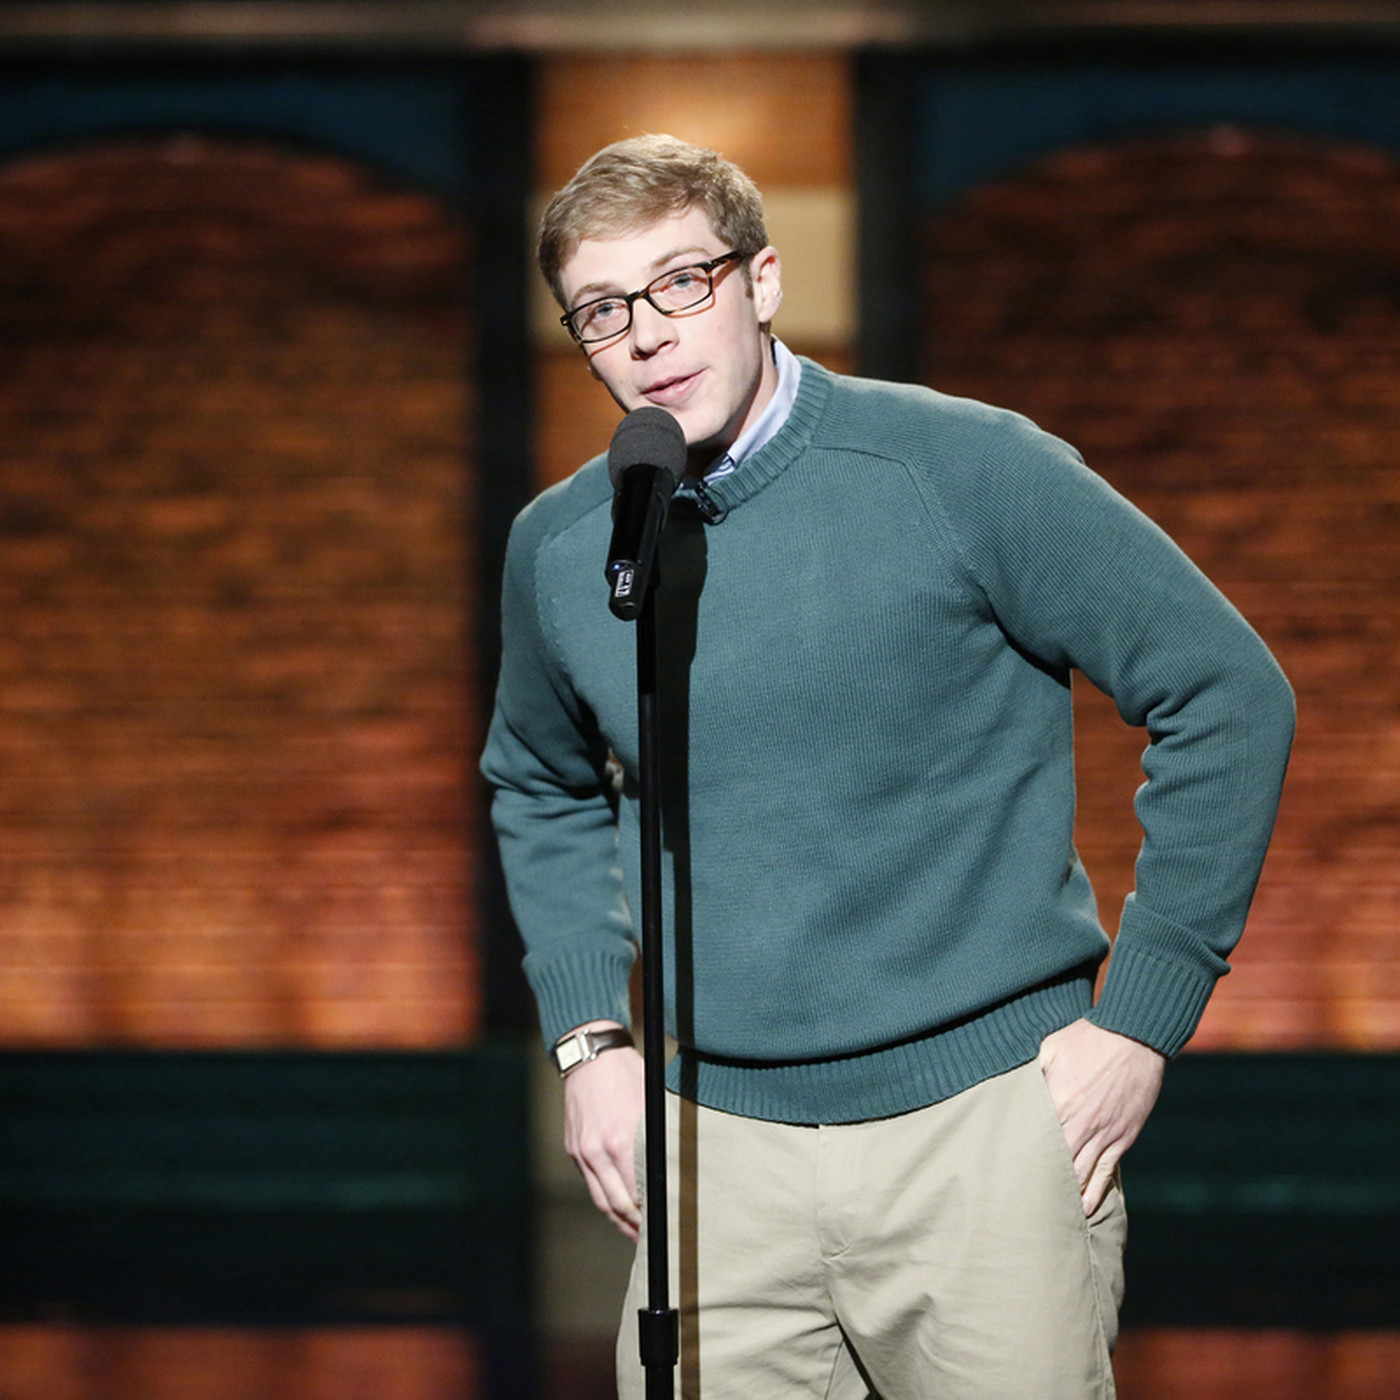 Joe Pera Is The Cozy Sweater Of Comedy The Ringer Season onejoe pera shows you iron after getting interrupted by the melsky family during his iron … joe pera is the cozy sweater of comedy